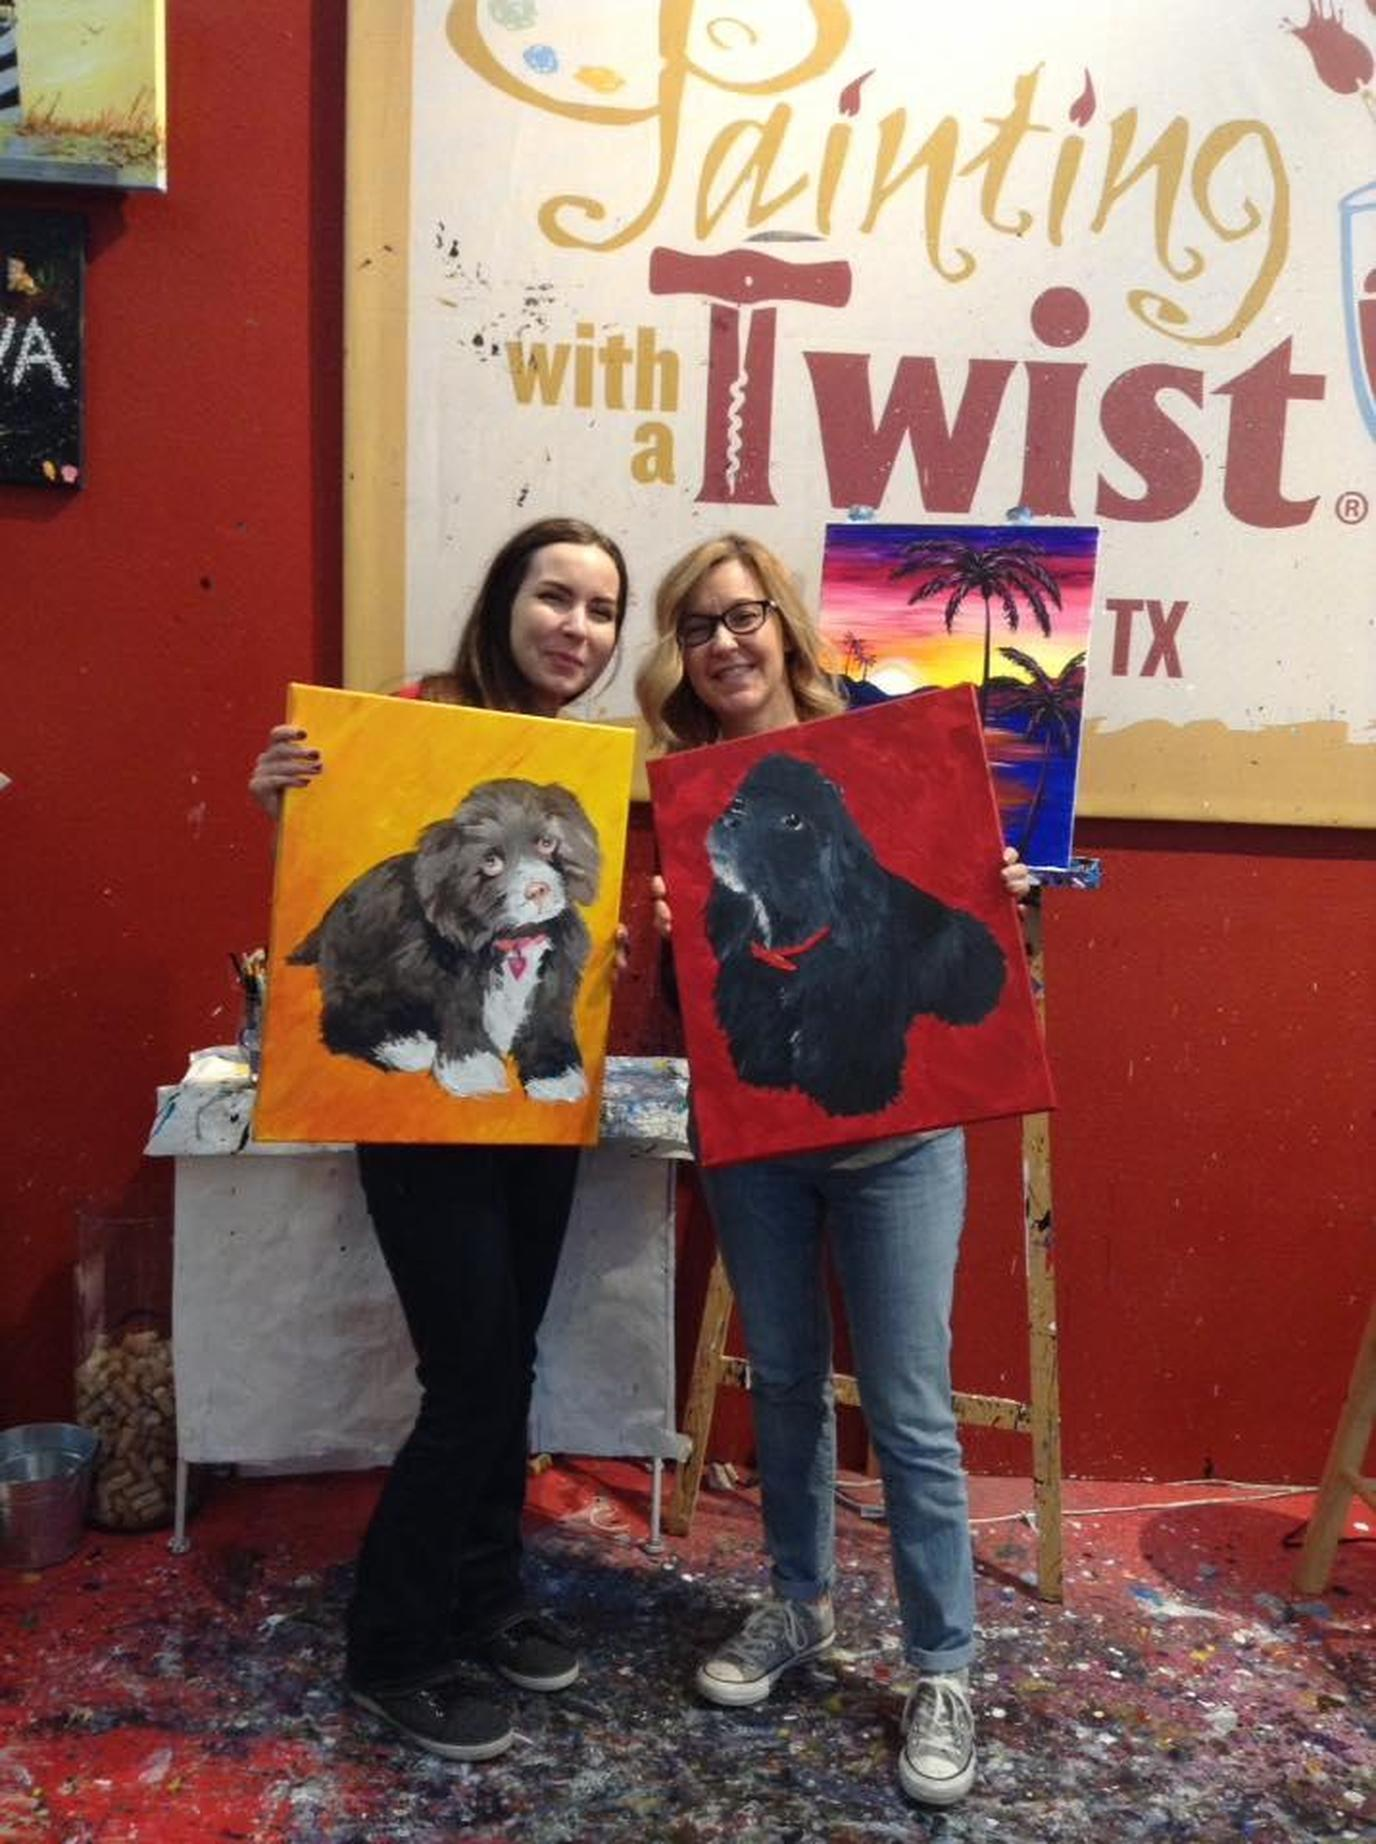 For a relaxing, fun time in Plano, stop by pet-friendly Painting With a Twist.